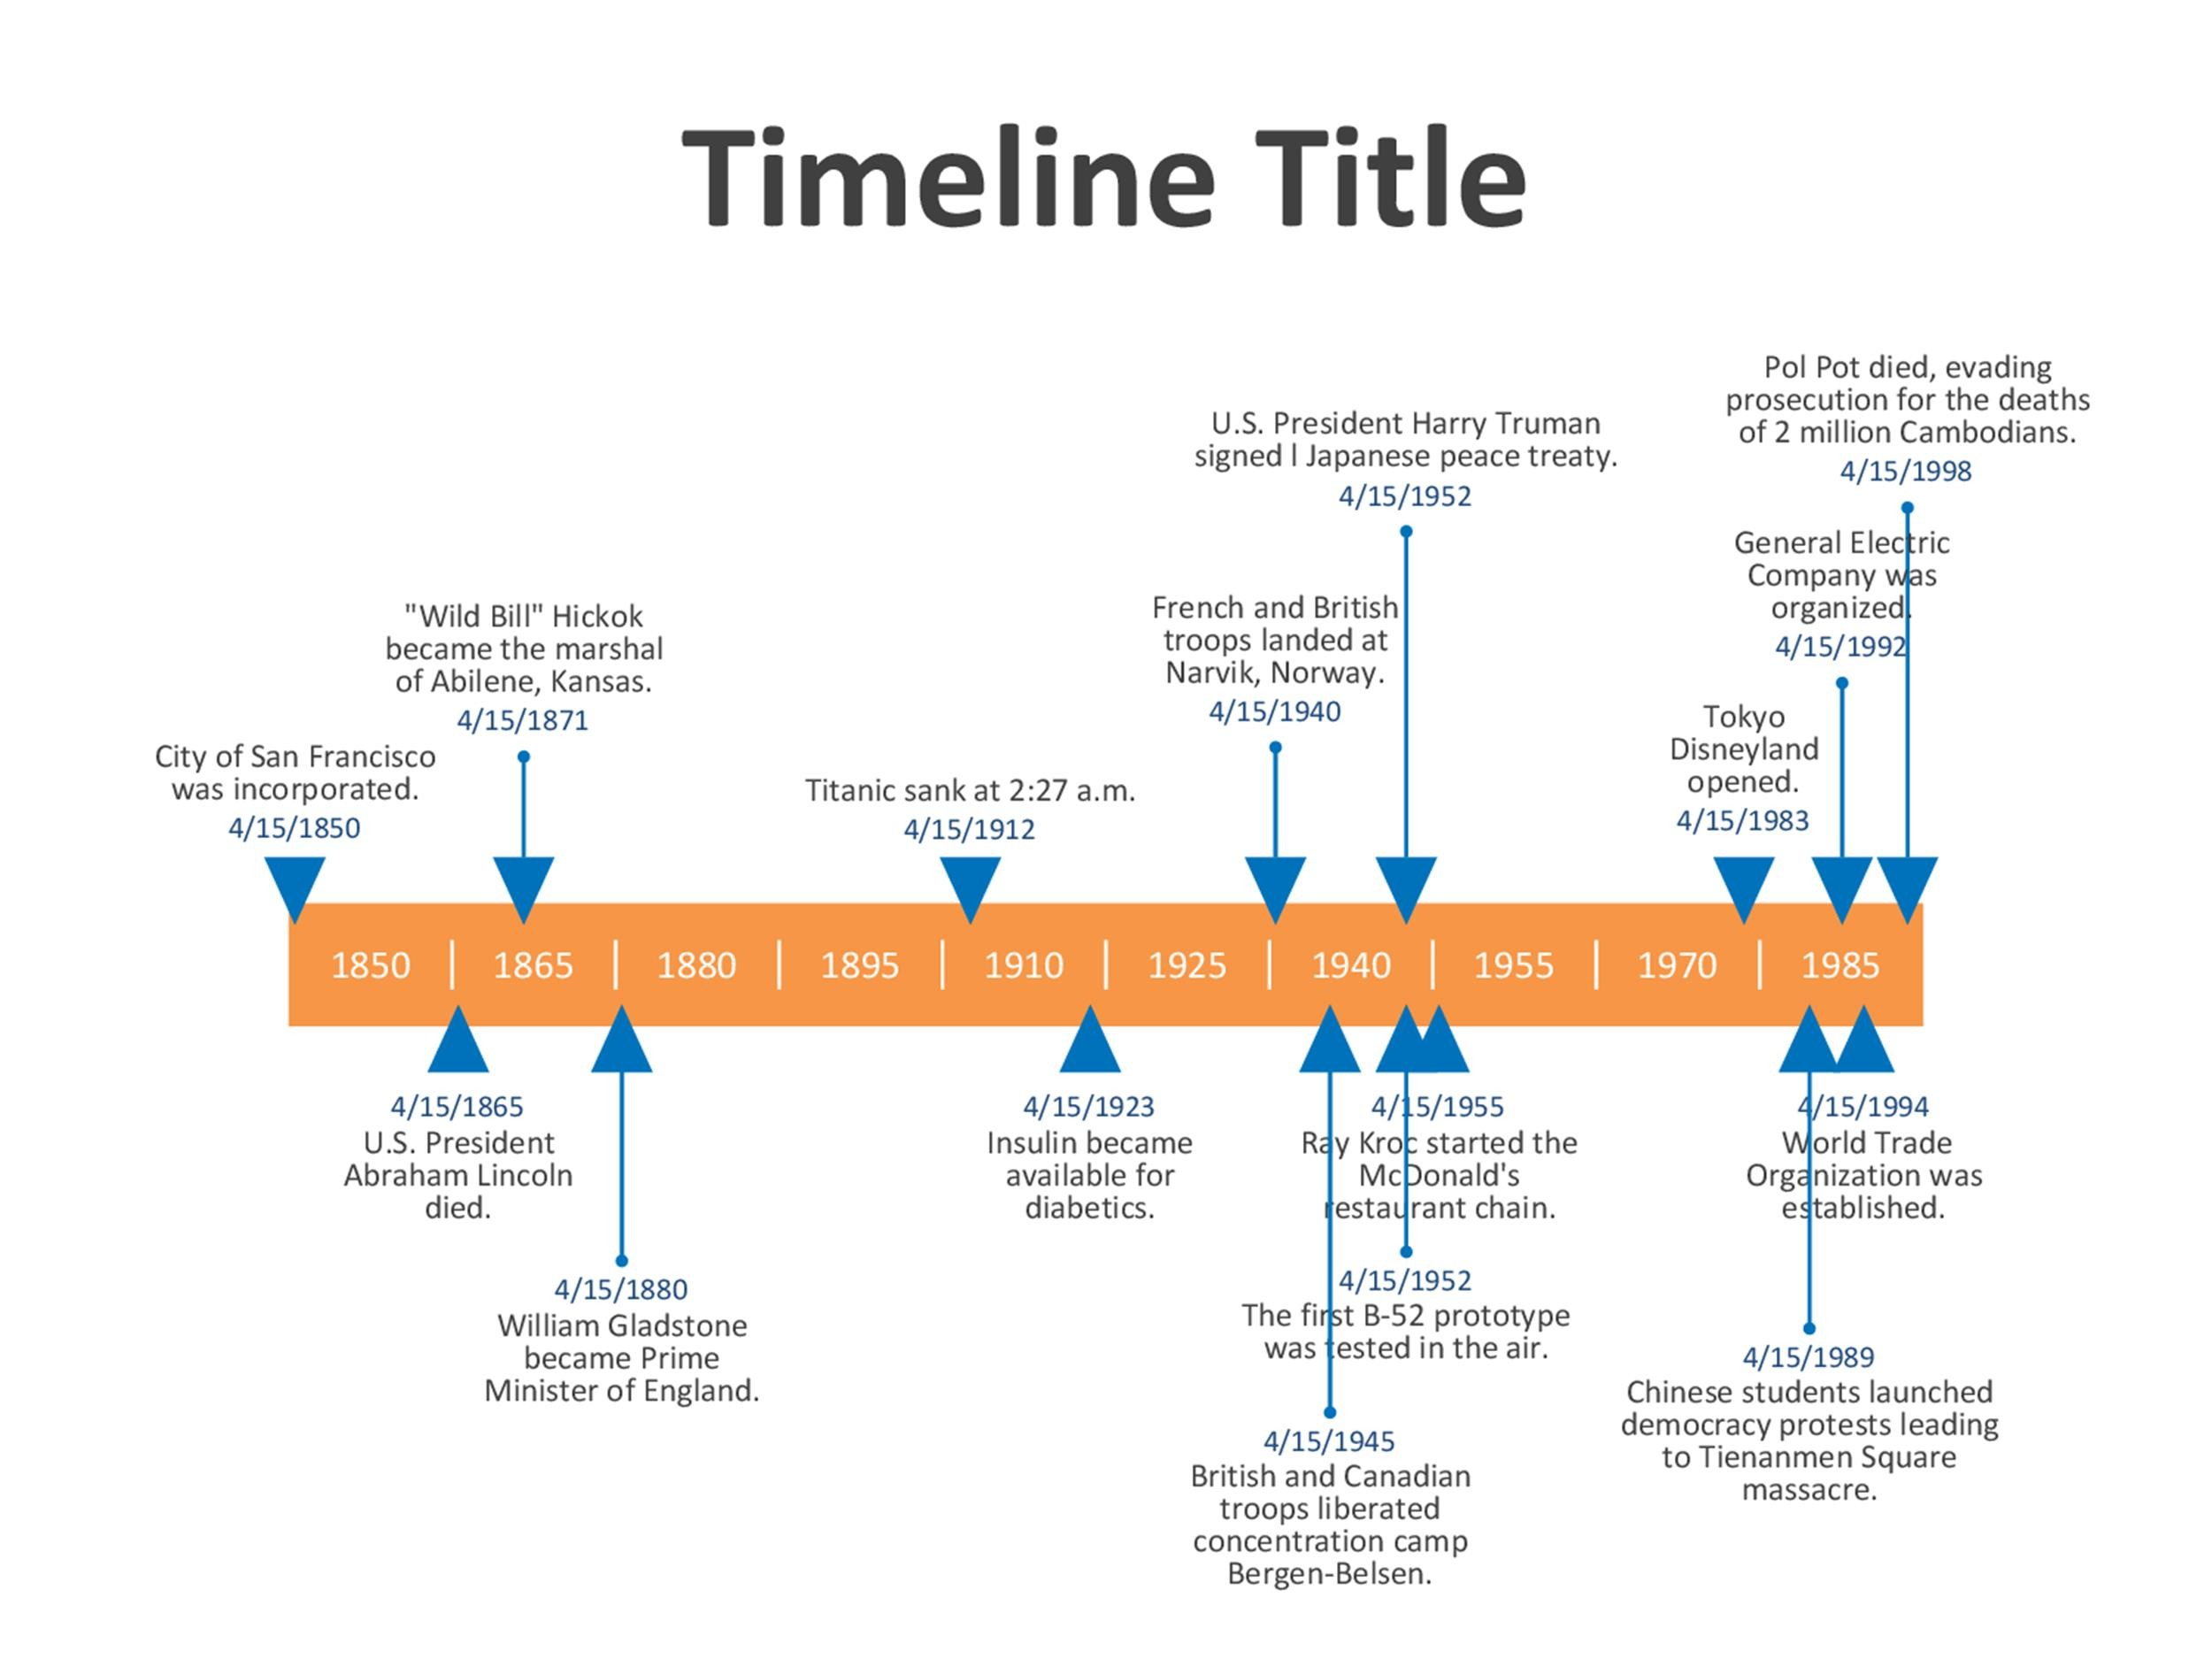 30+ Timeline Templates (Excel, Power Point, Word) - Template Lab - timeline template